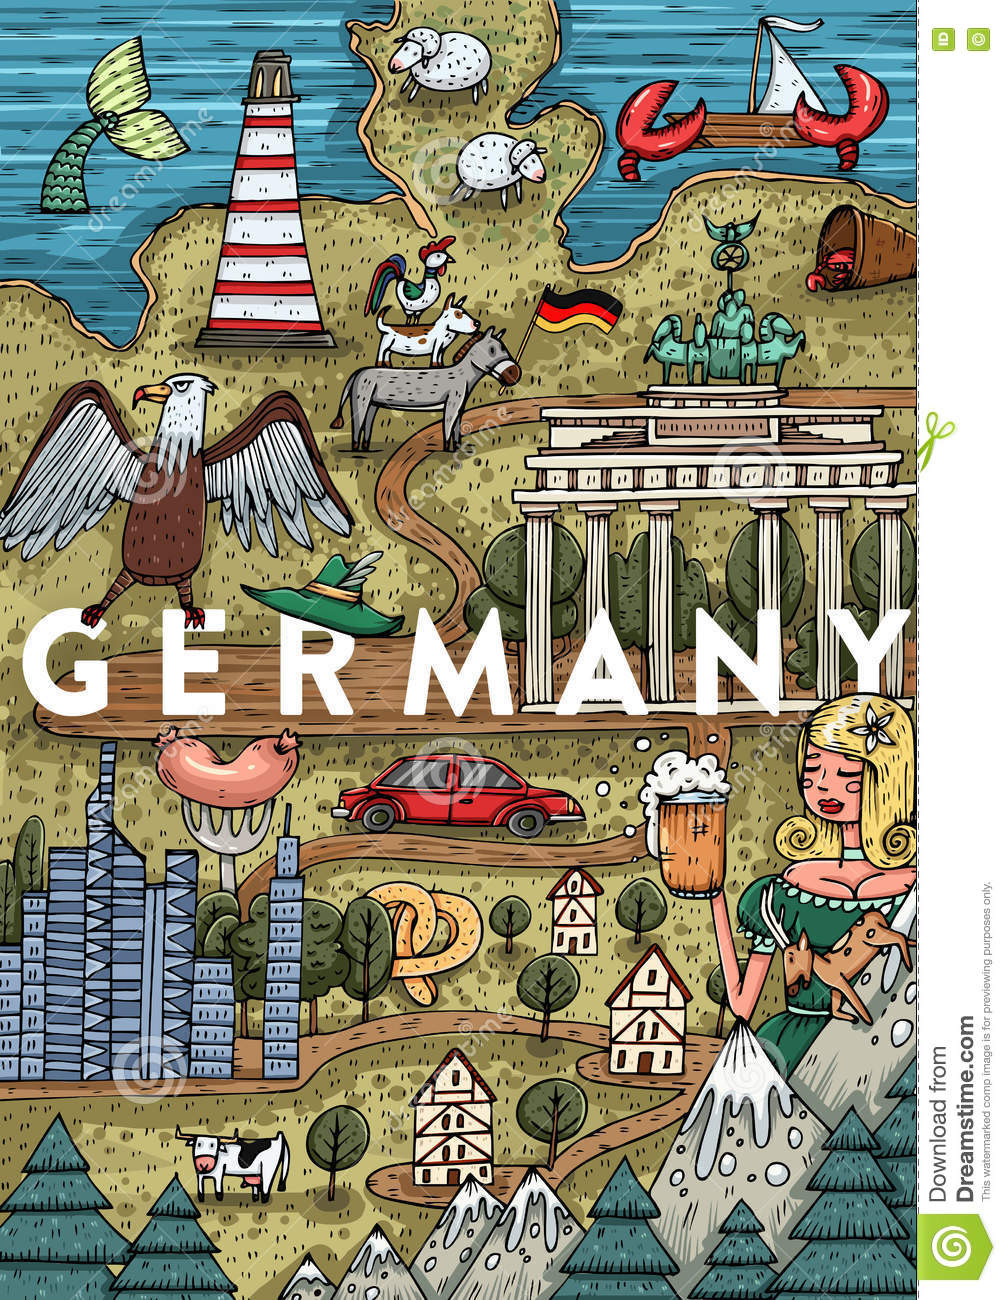 Funny Hand Drawn Cartoon Germany Map With Most Popular Places Of - Germany map cartoon